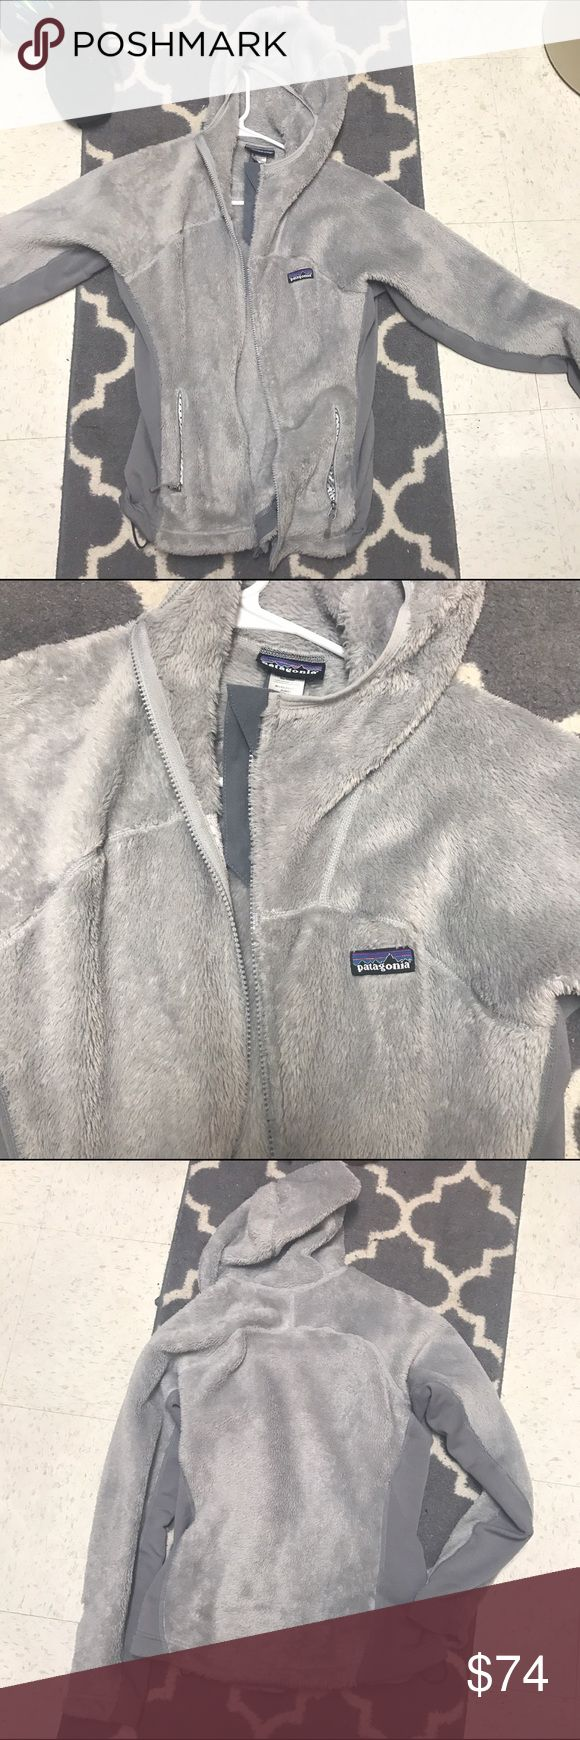 Patagonia Fleece Jacket authentic Like new! Bought last winter, Excellent condition, very warm and soft Patagonia Jackets & Coats